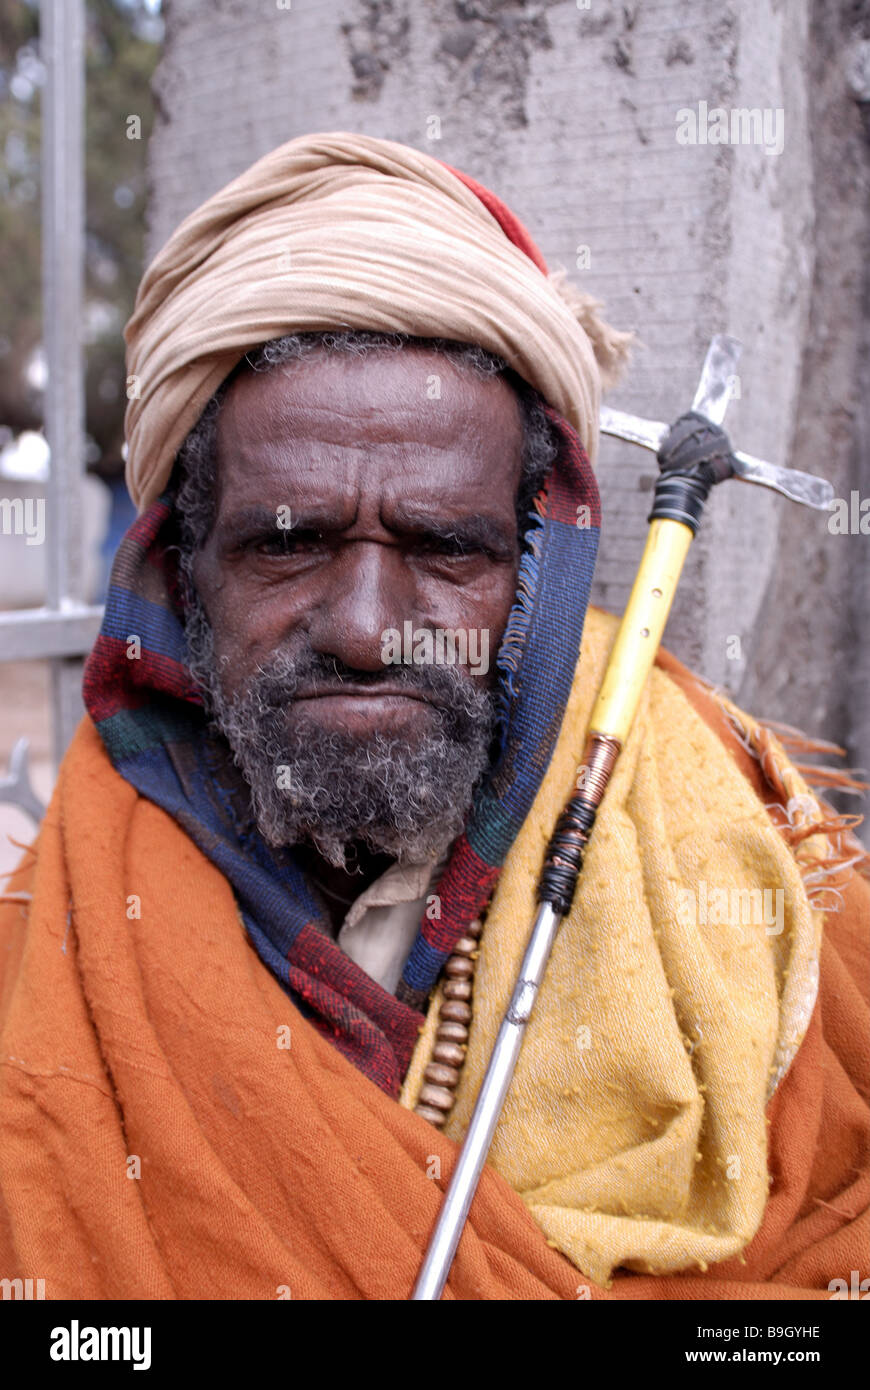 Ethiopia Lalibela pilgrims seriously portrait East-Africa people man old creditors headgear prayer-stick cross belief - Stock Image